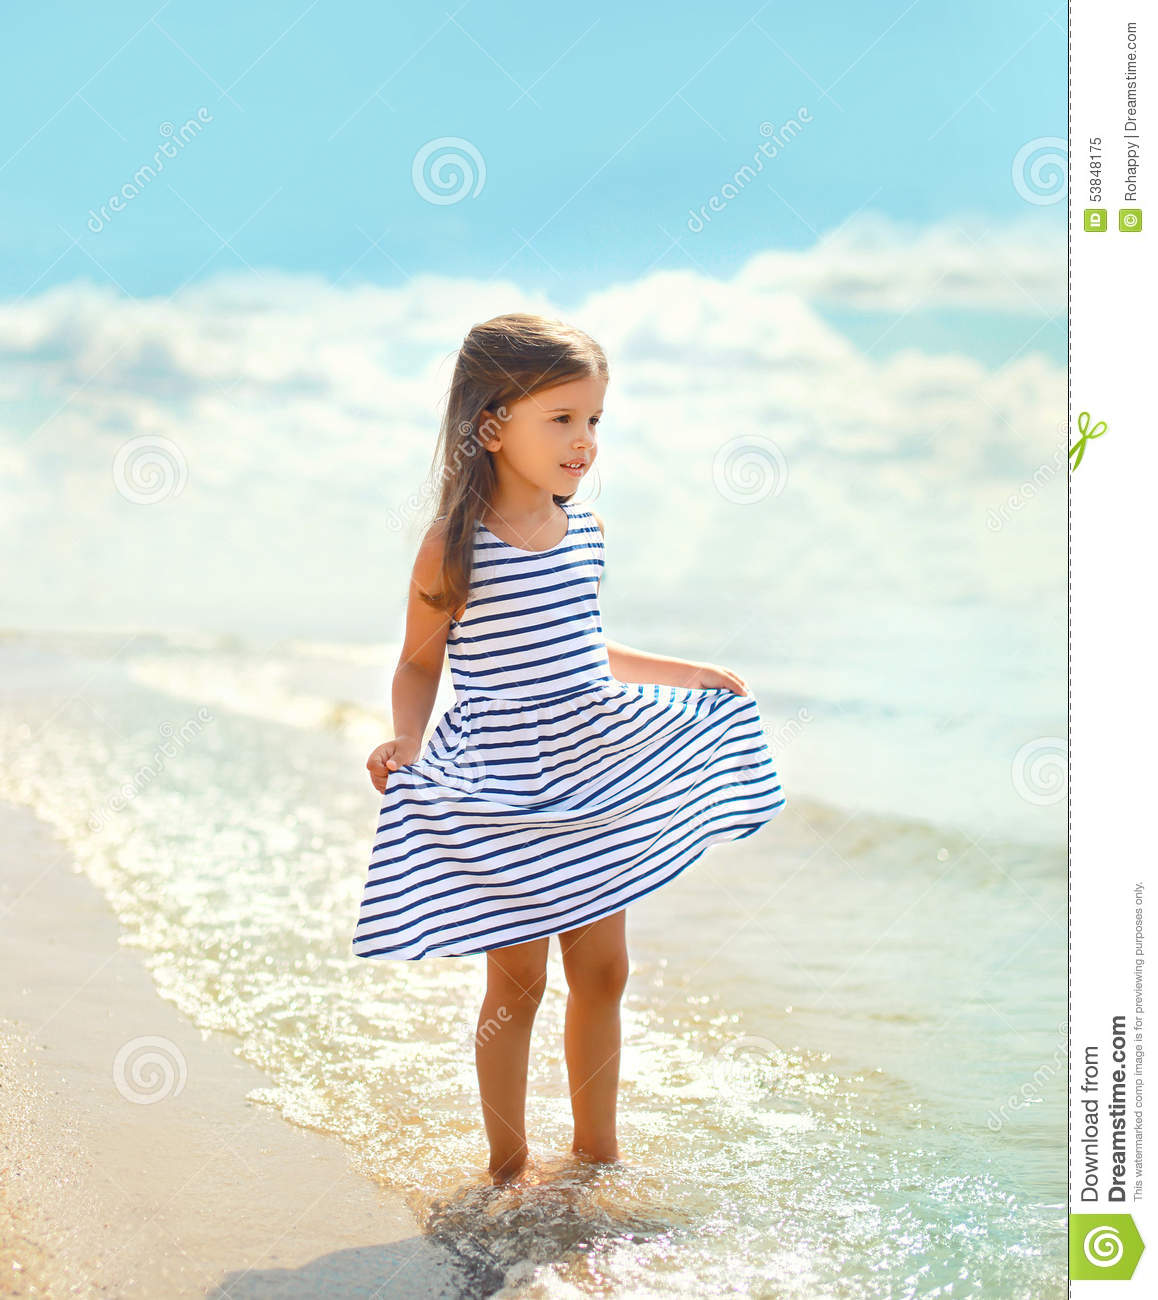 6a4872e57 Beautiful Little Girl In A Striped Dress Walking On The Beach Stock ...